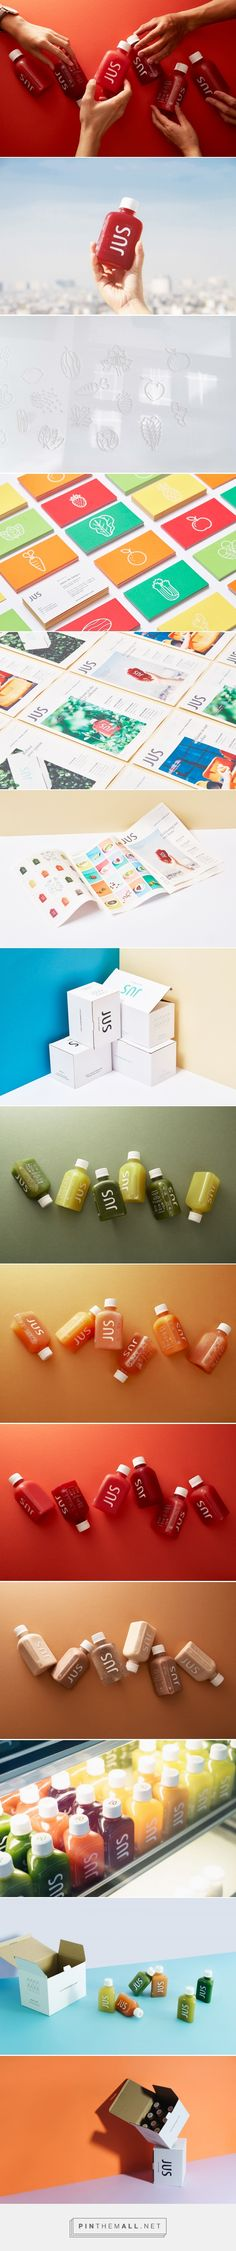 JUS • Juice Up Saigon packaging design by M - N Associates - http://www.packagingoftheworld.com/2017/11/jus-juice-up-saigon.html